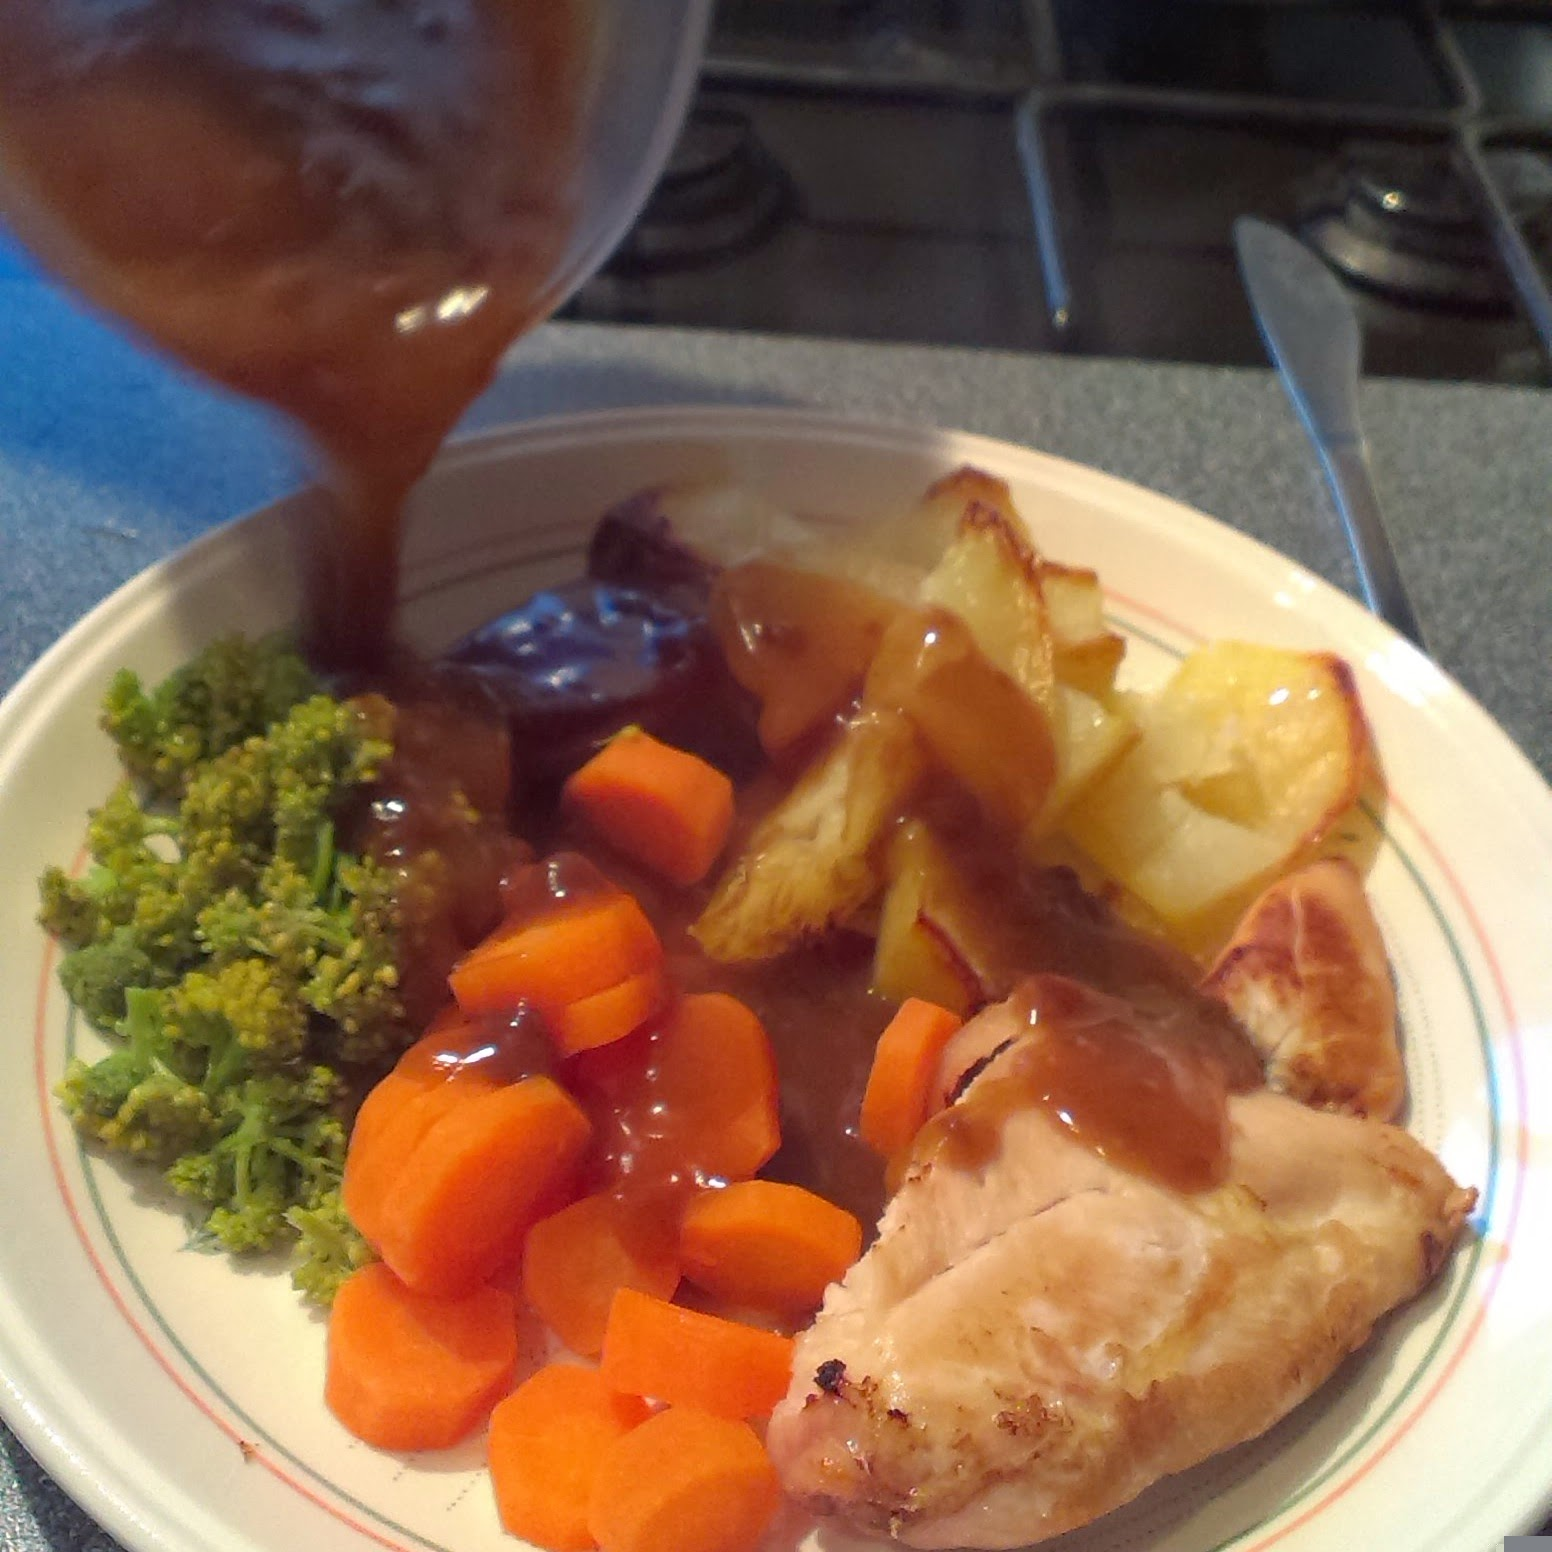 8pm - roast chicken dinner